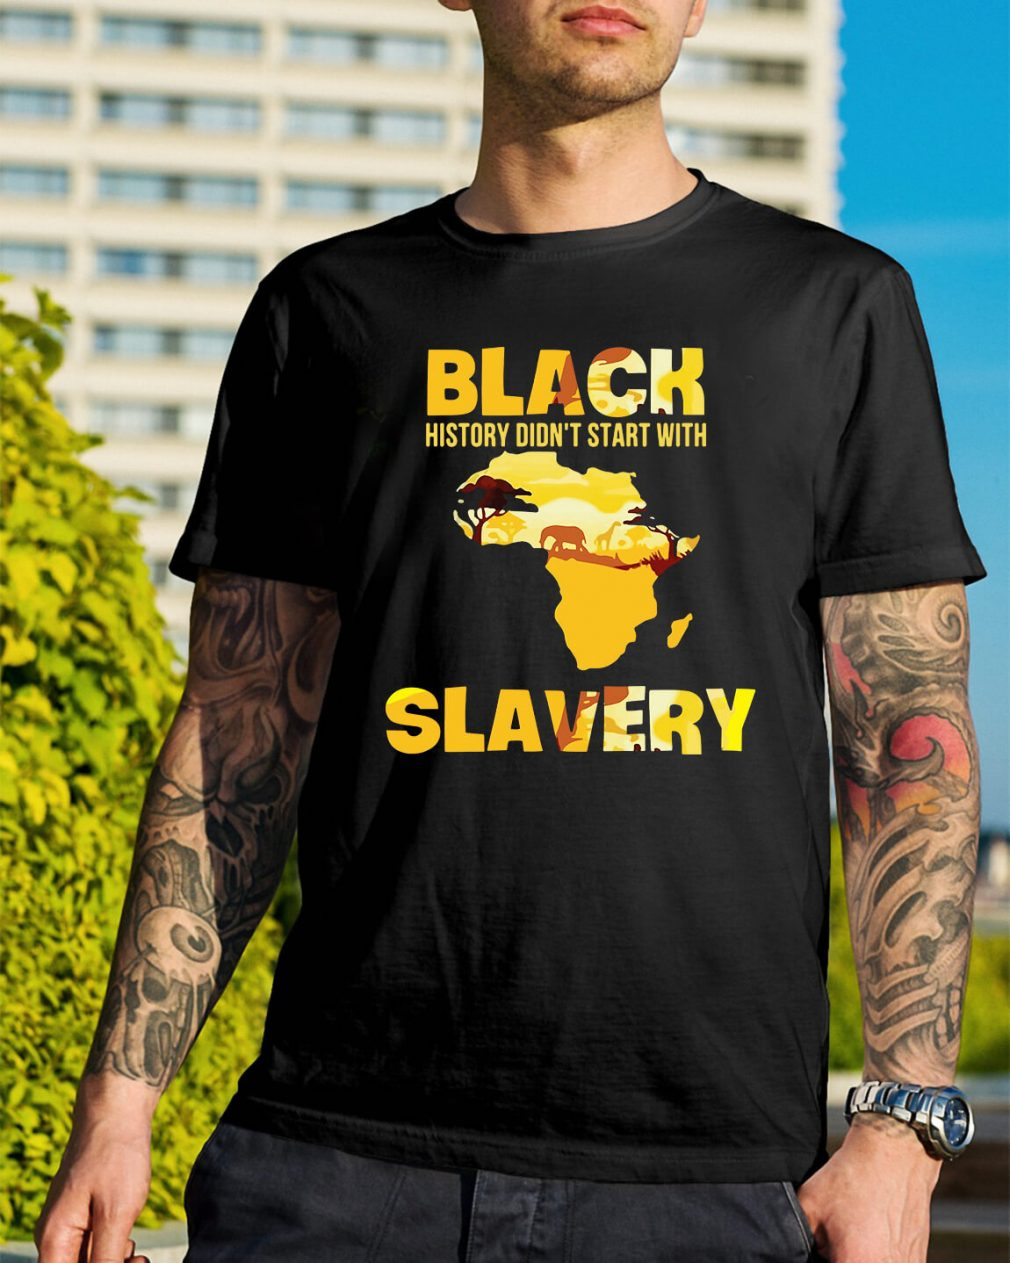 Black history didn't start with Slavery shirt